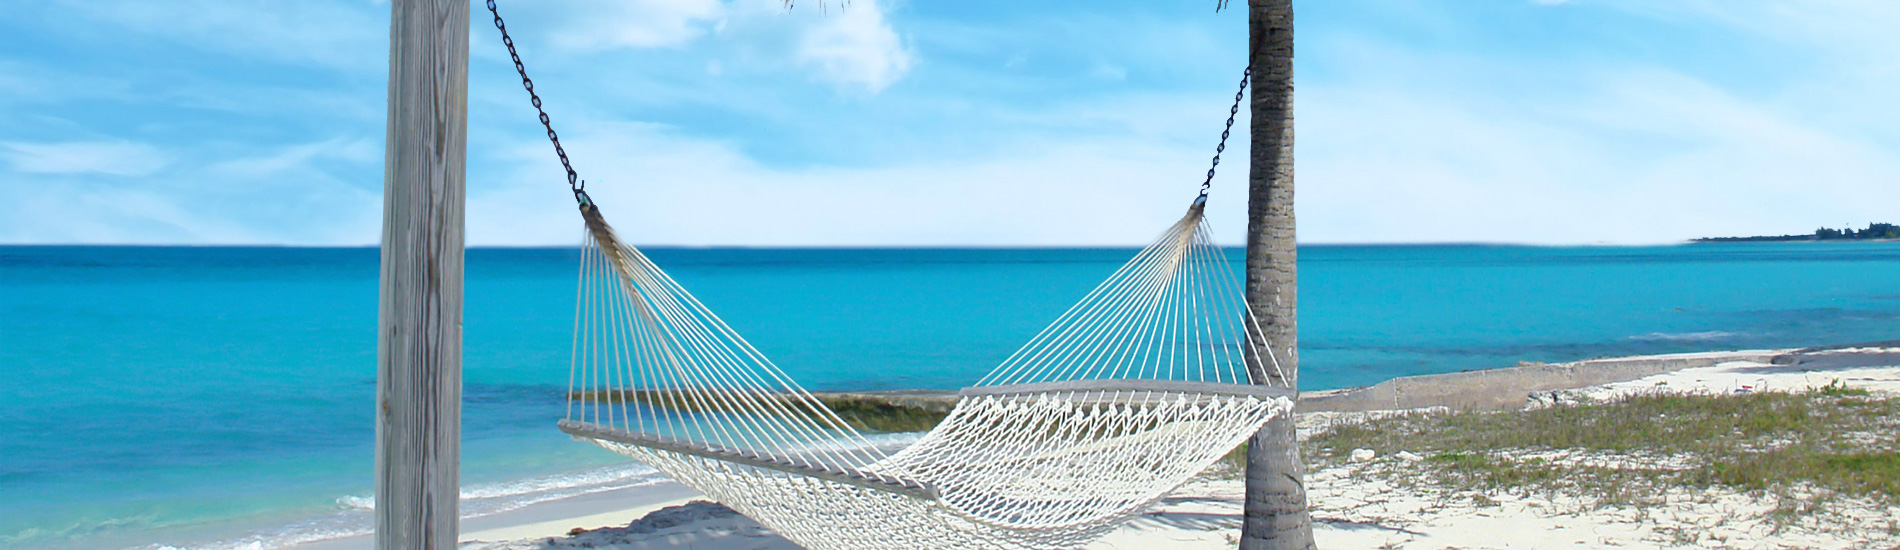 Hammock hanging from beachside palm trees